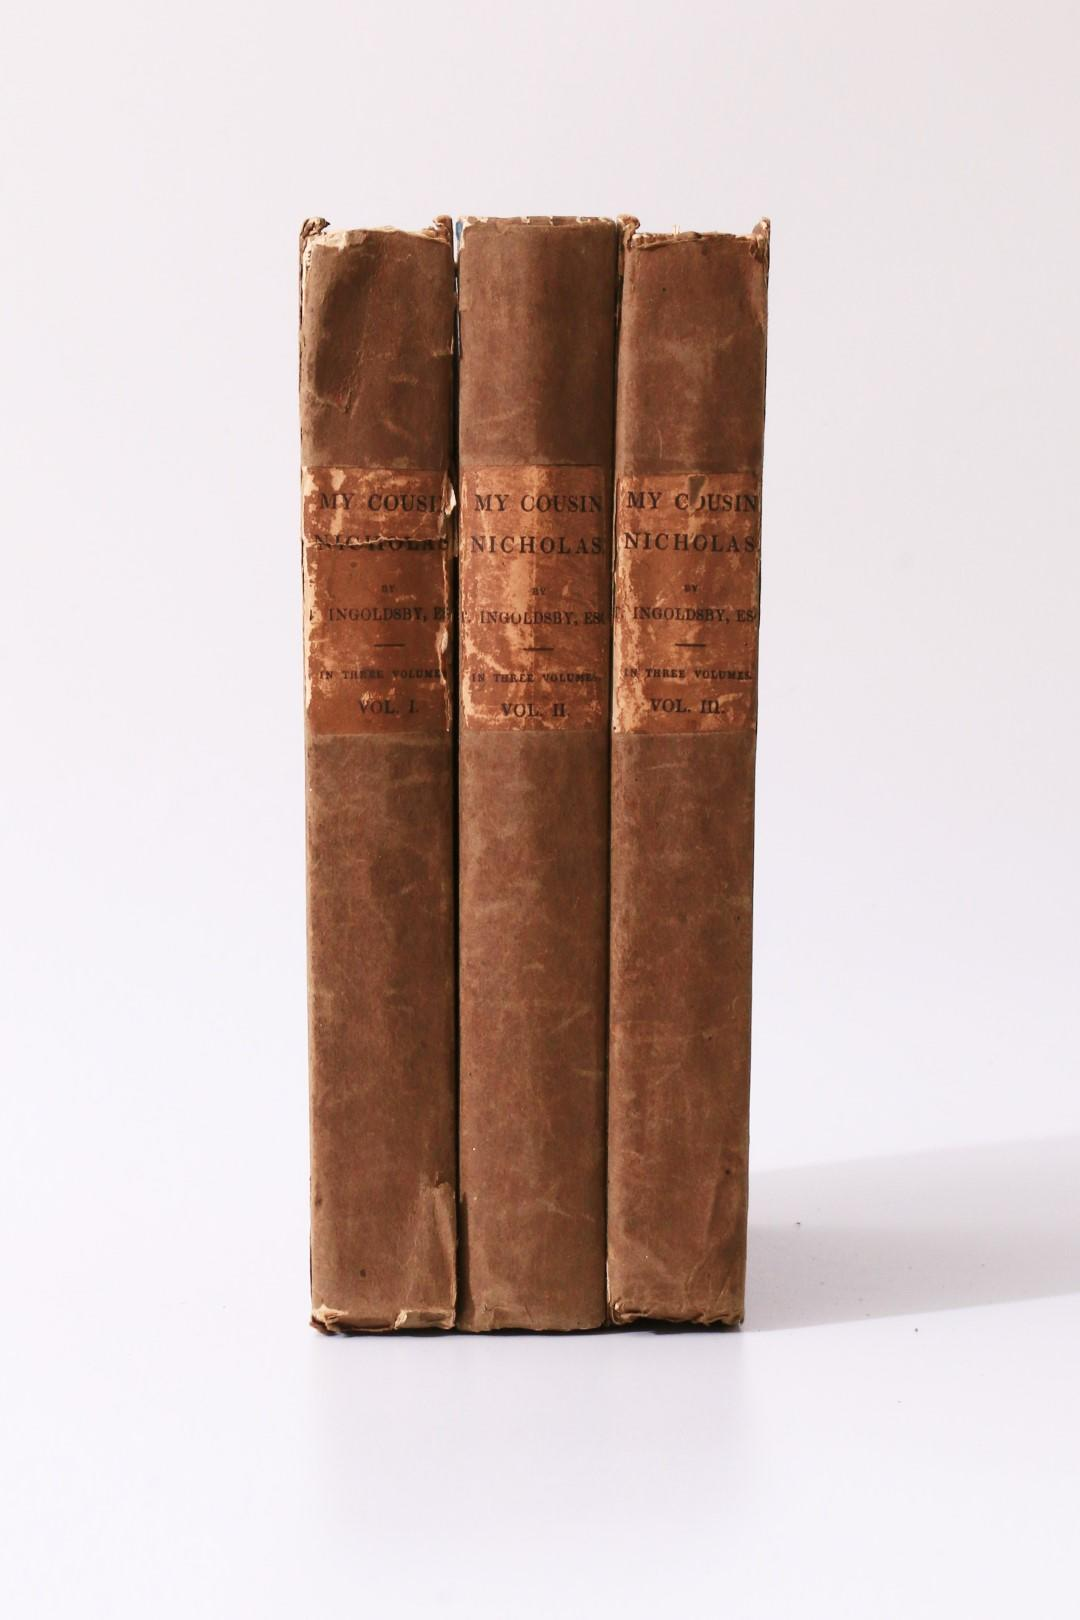 Thomas Ingoldsby - Some Account of my Cousin Nicholas - Richard Bentley, 1841, First Edition.